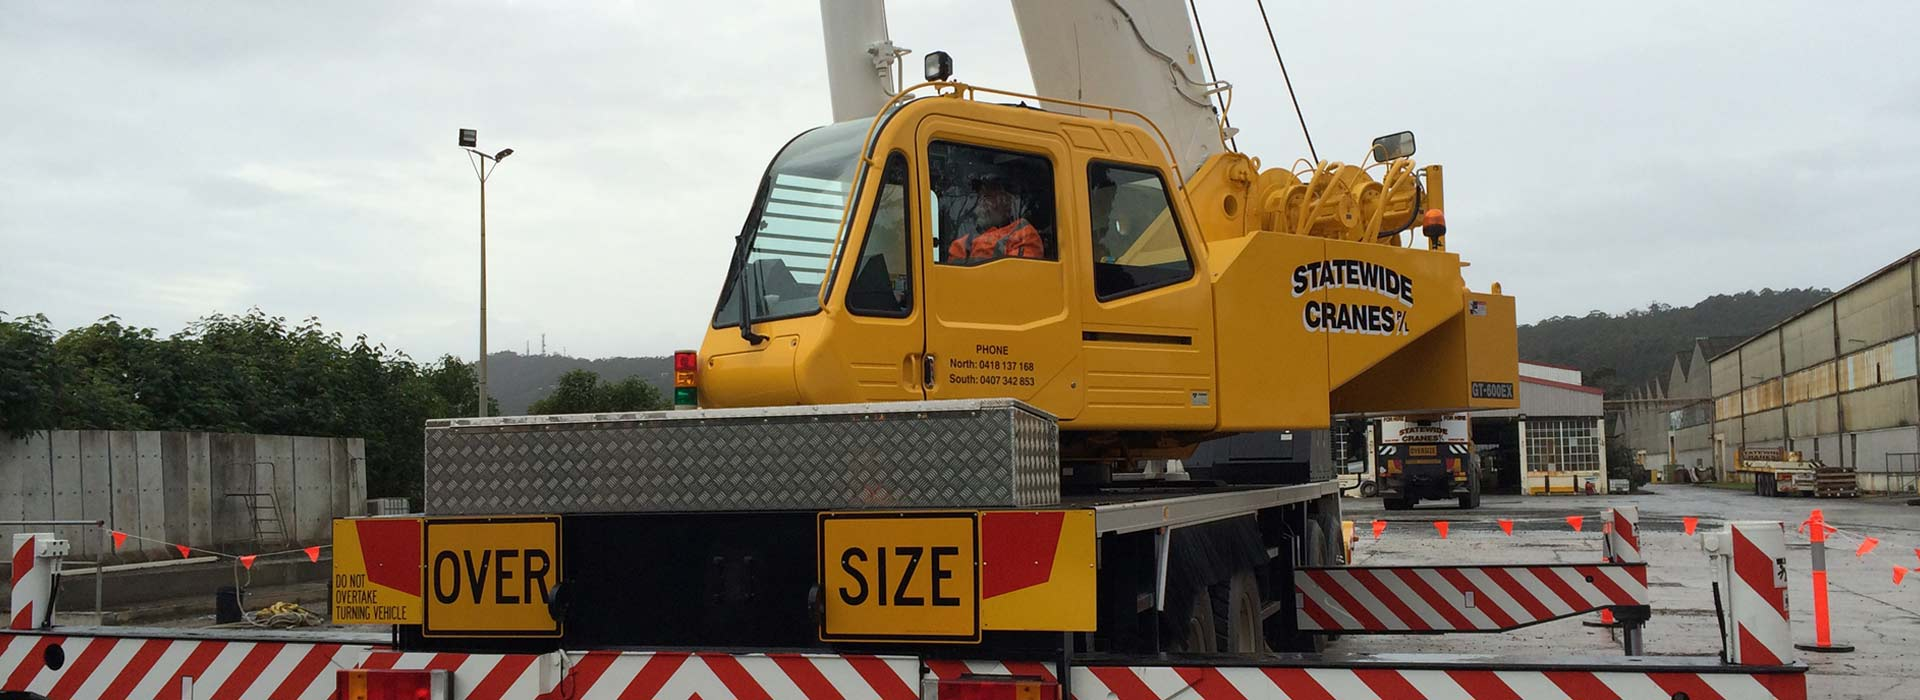 industrial licencing solutions over size crane